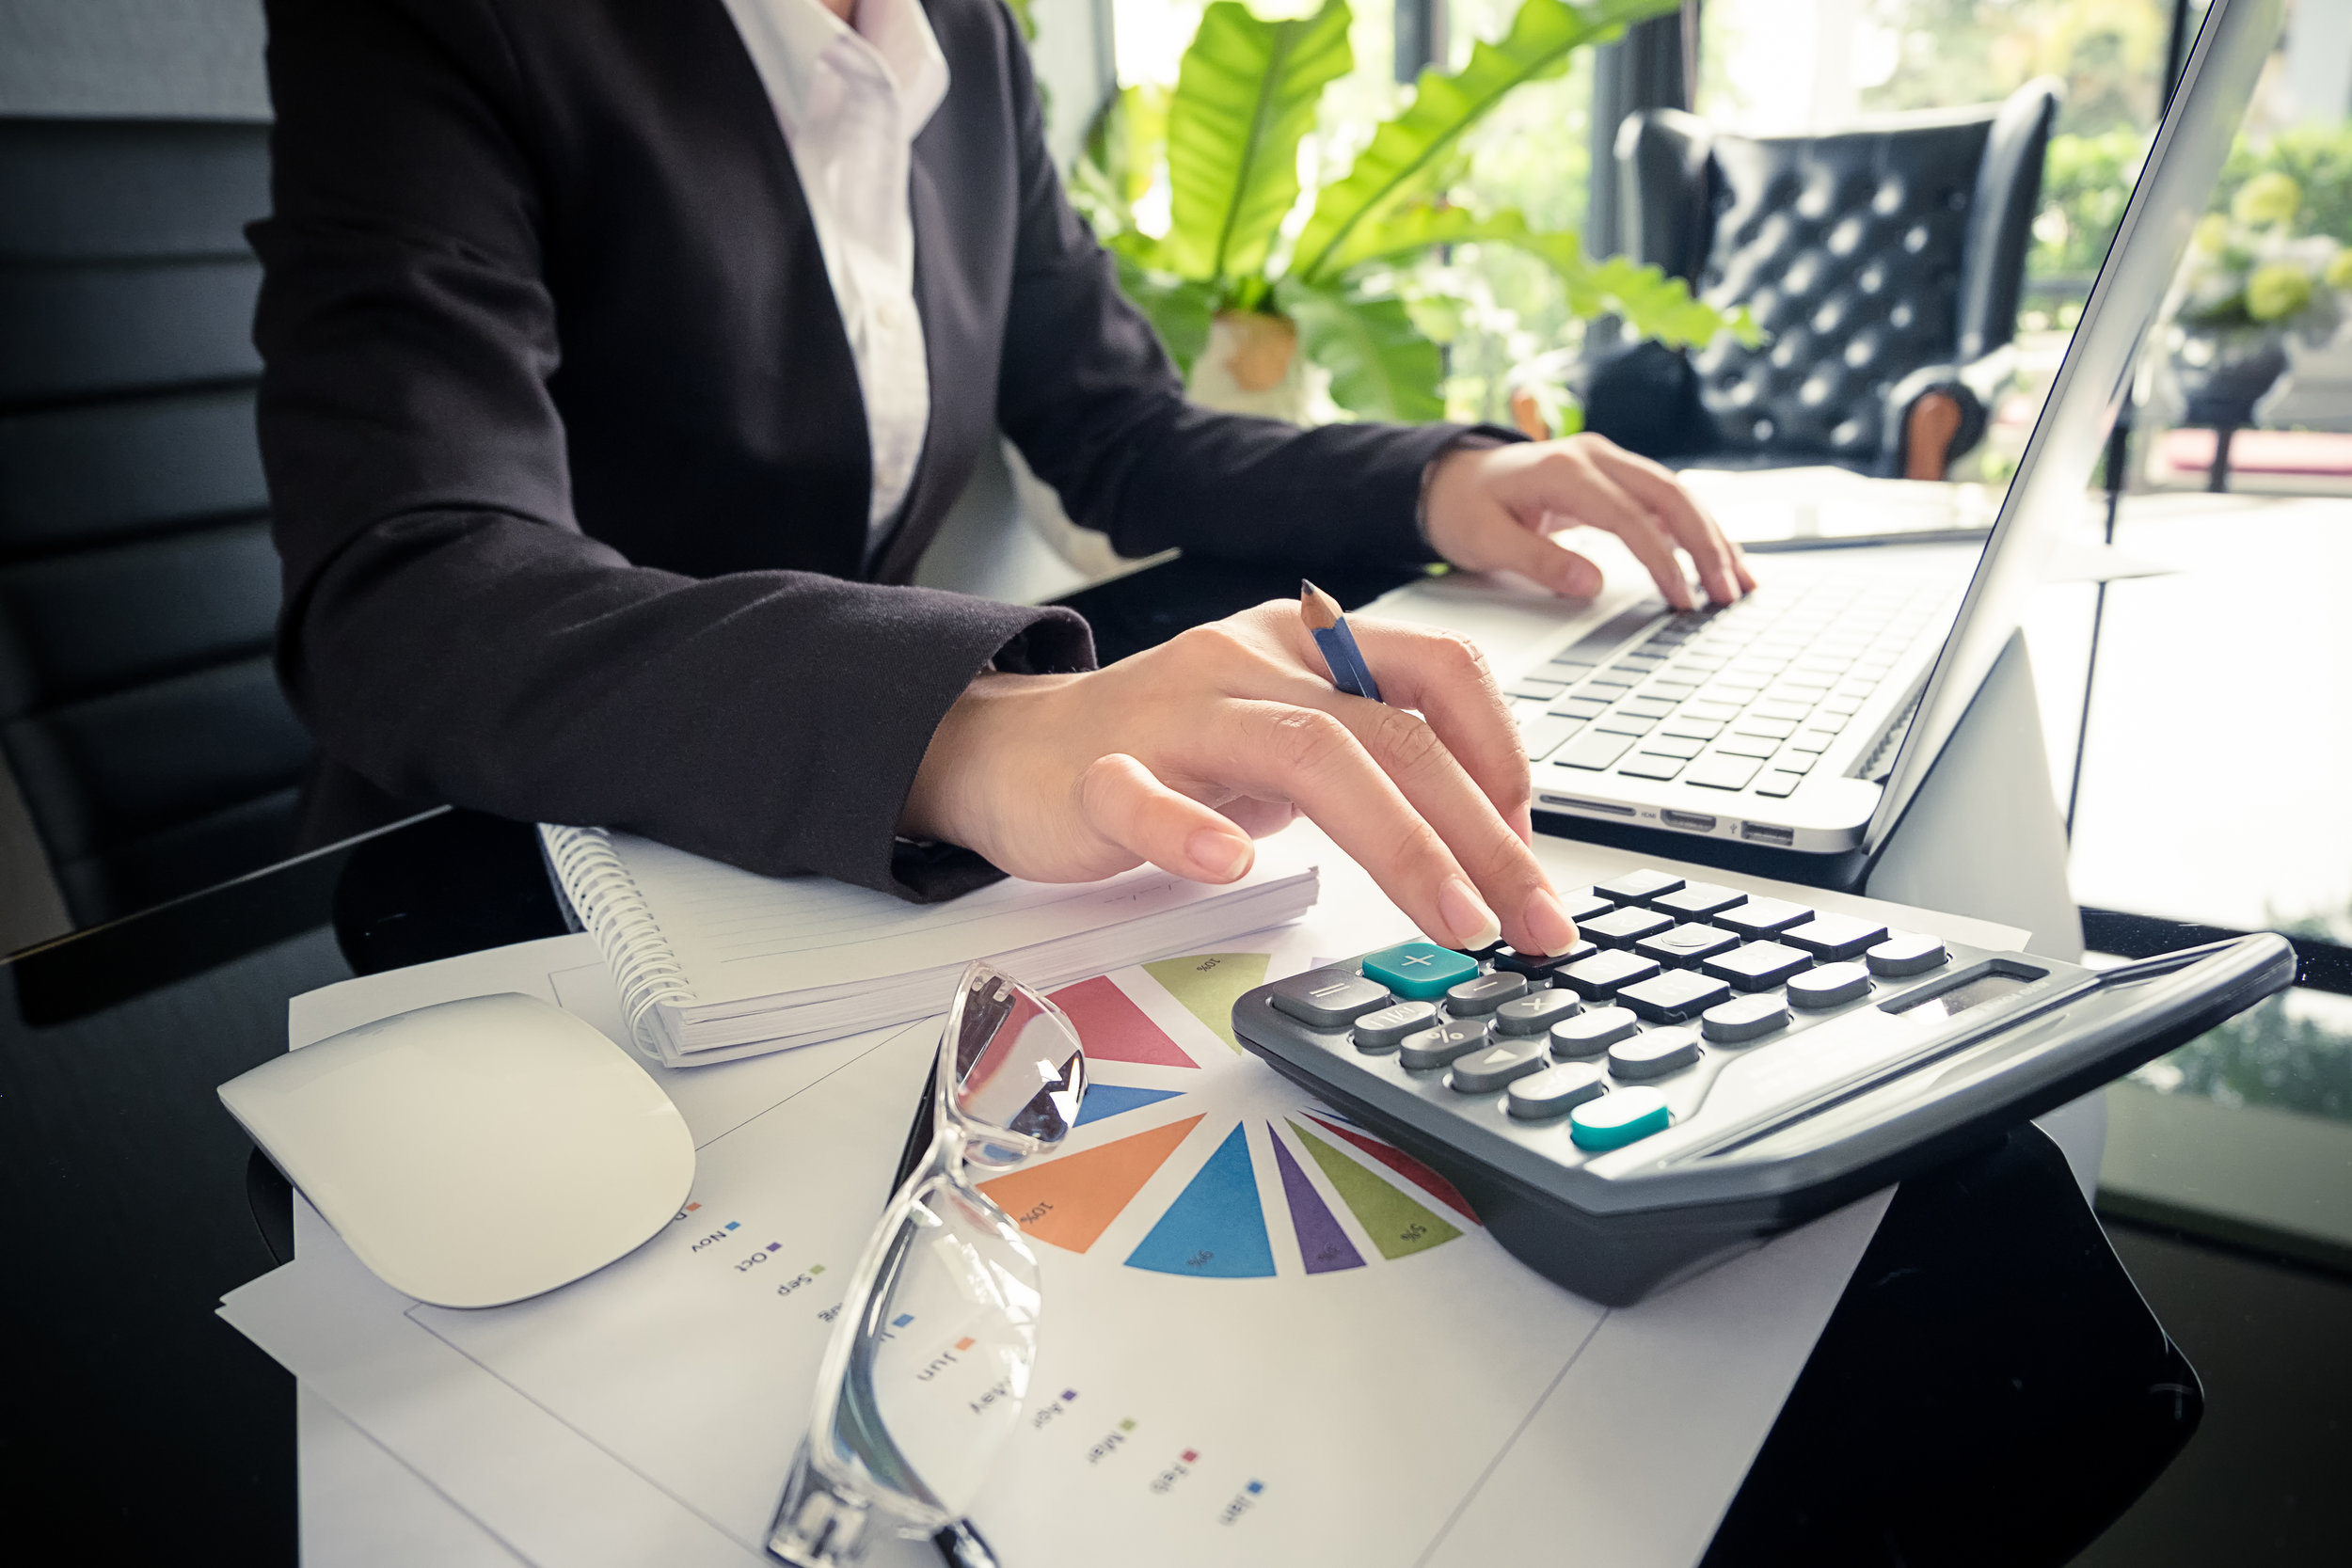 Bookkeeping & Organization - Relieve countless hours in your schedule by letting us track down your receivables and returns. Efficiency is so important when balancing the books and monitoring your incomes. We have tried and true strategies to get your bookkeeping in order for easy management.Hire Us!